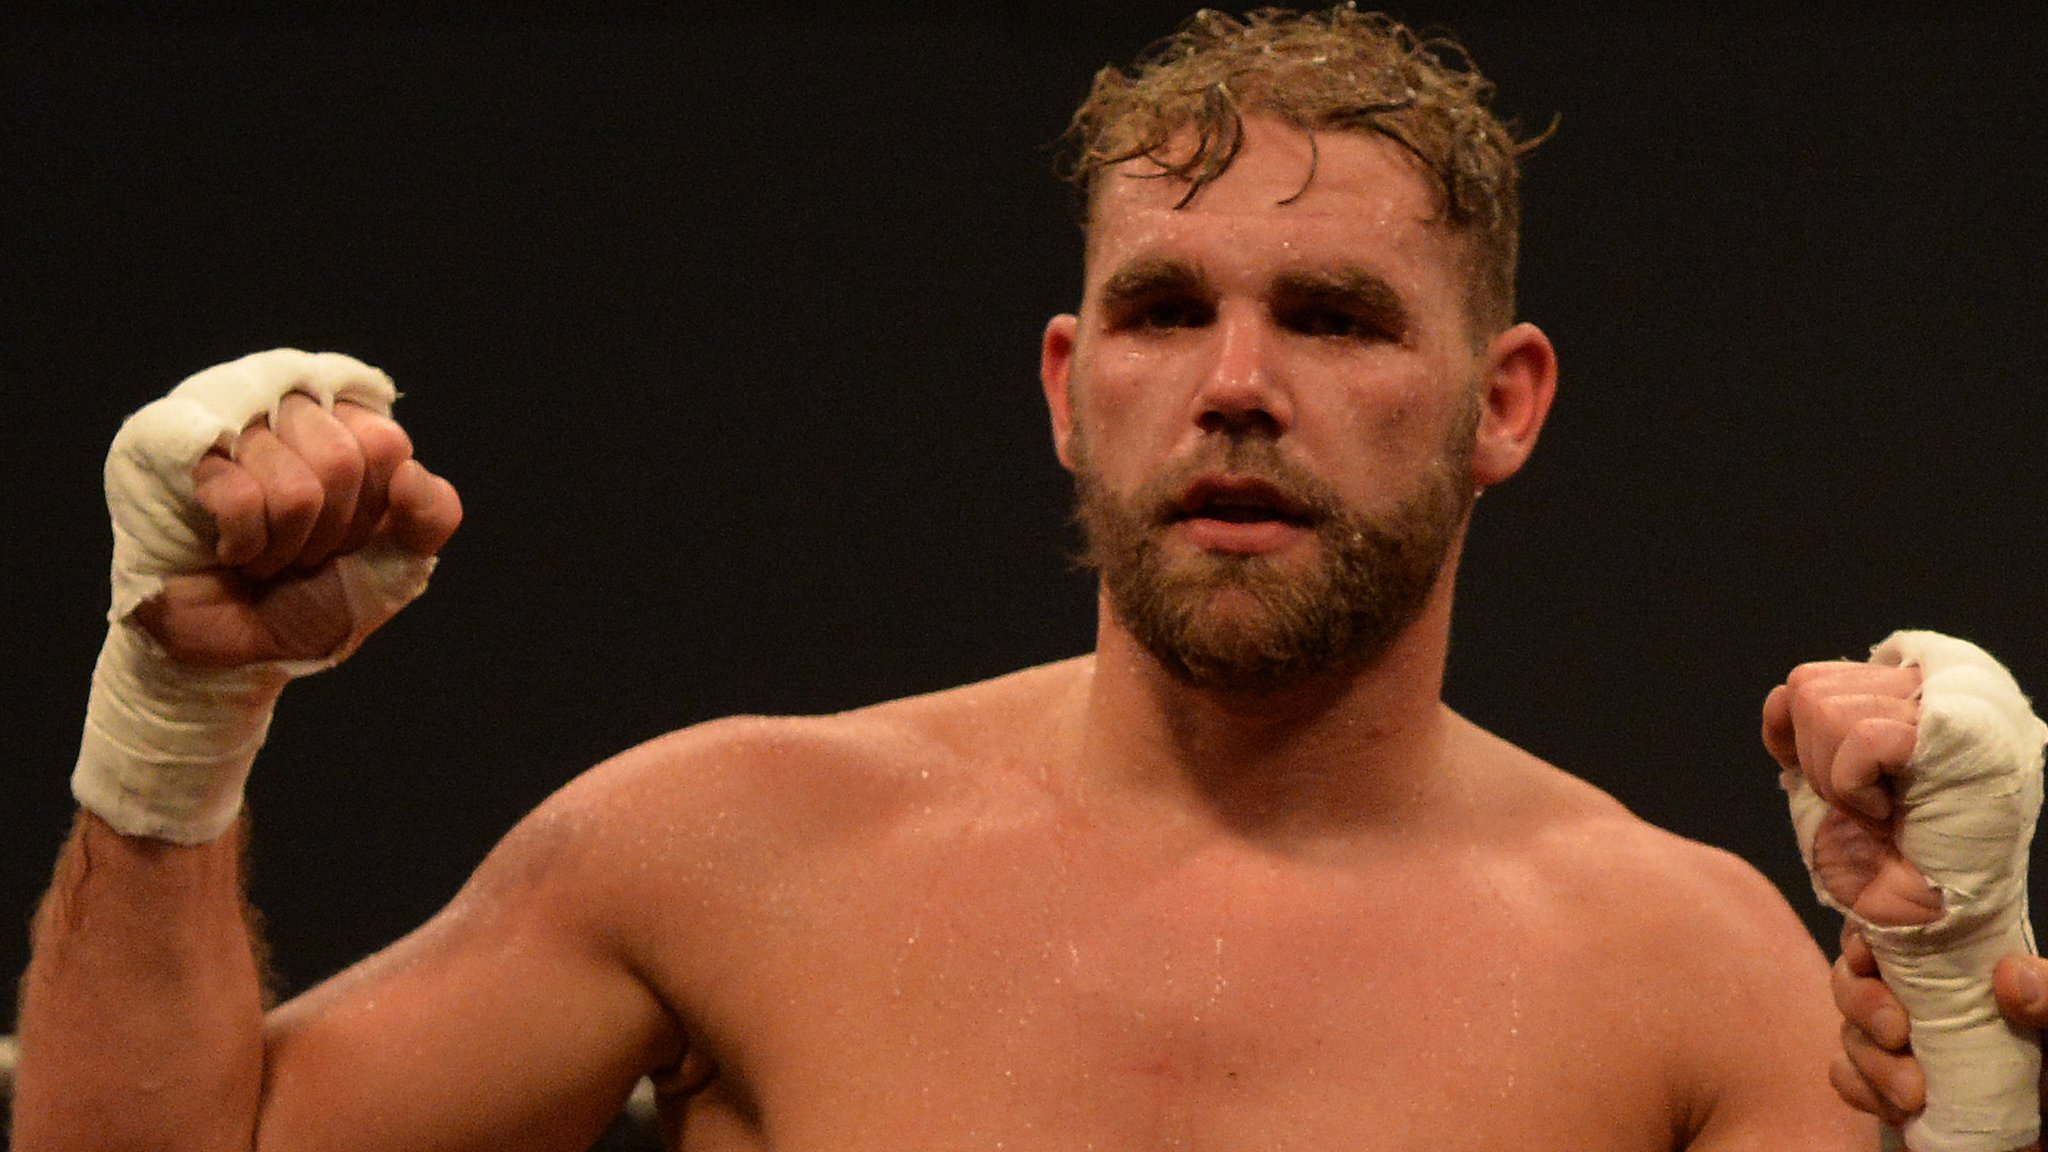 Billy Joe Saunders: World champion boxer charged with misconduct over 'sickening' social media video